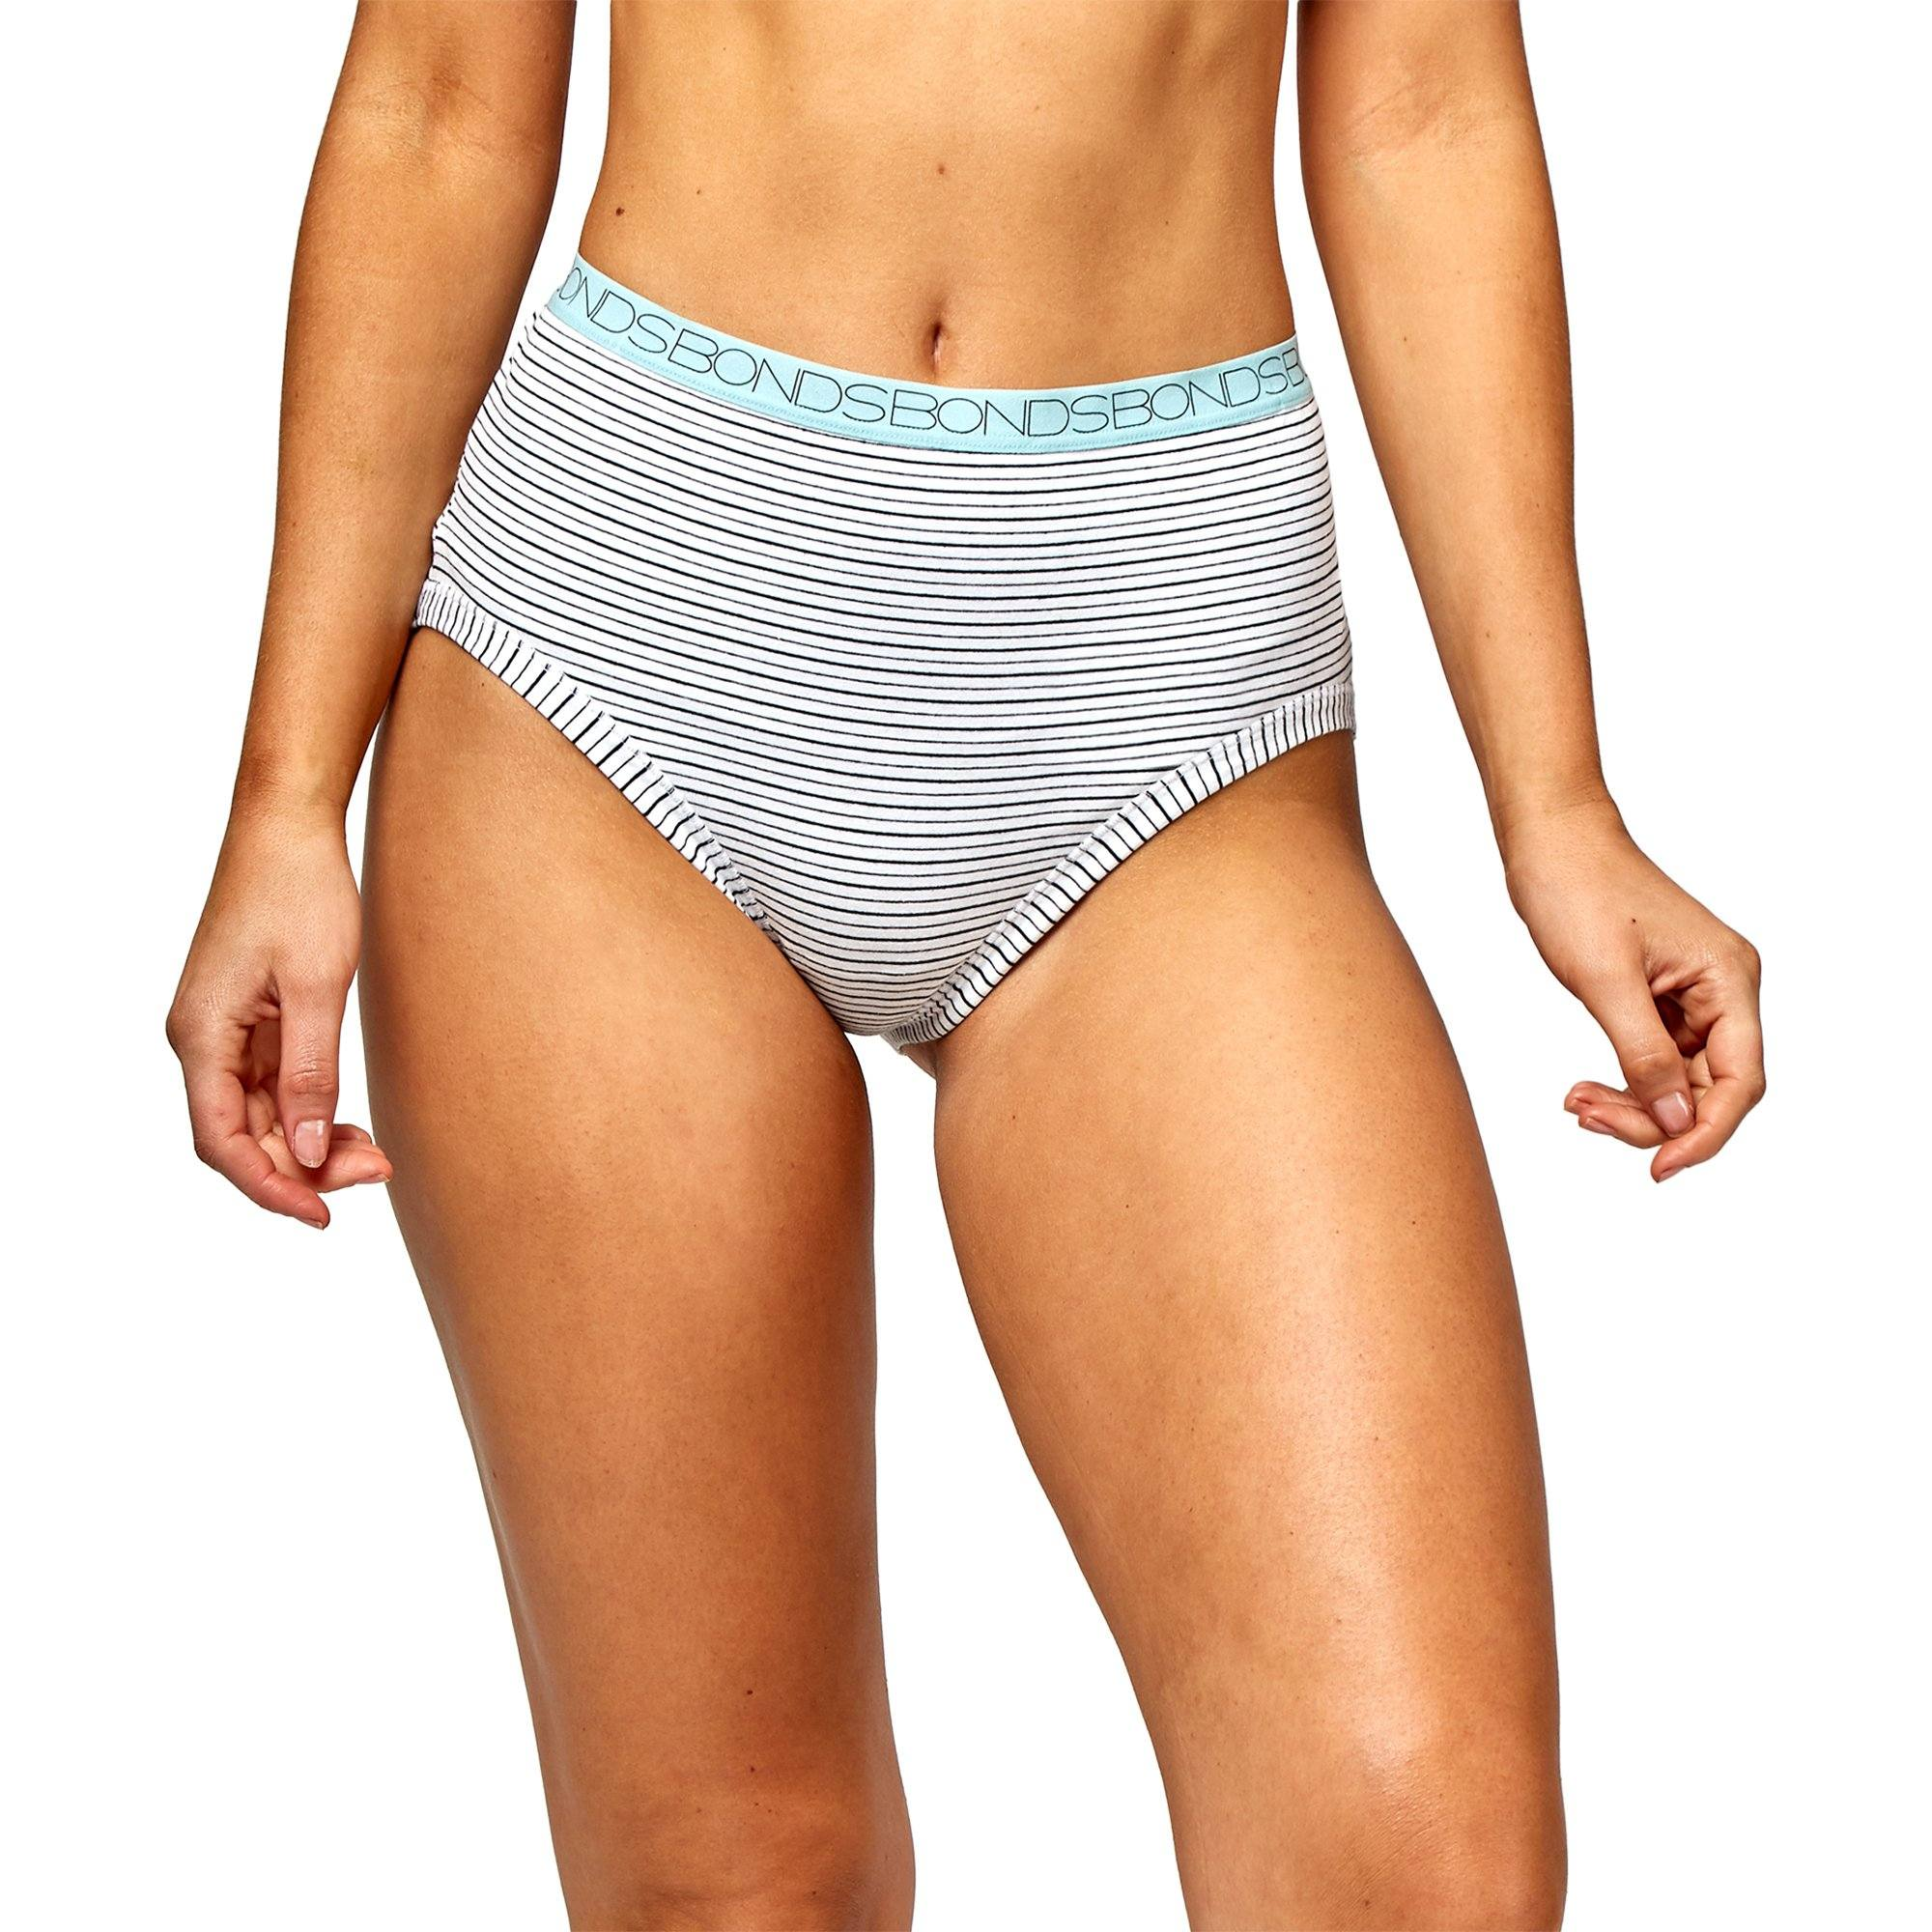 Bonds Women'S Underwear Cottontails Yds F/B - Stripe 30 Women's Underwear Bonds